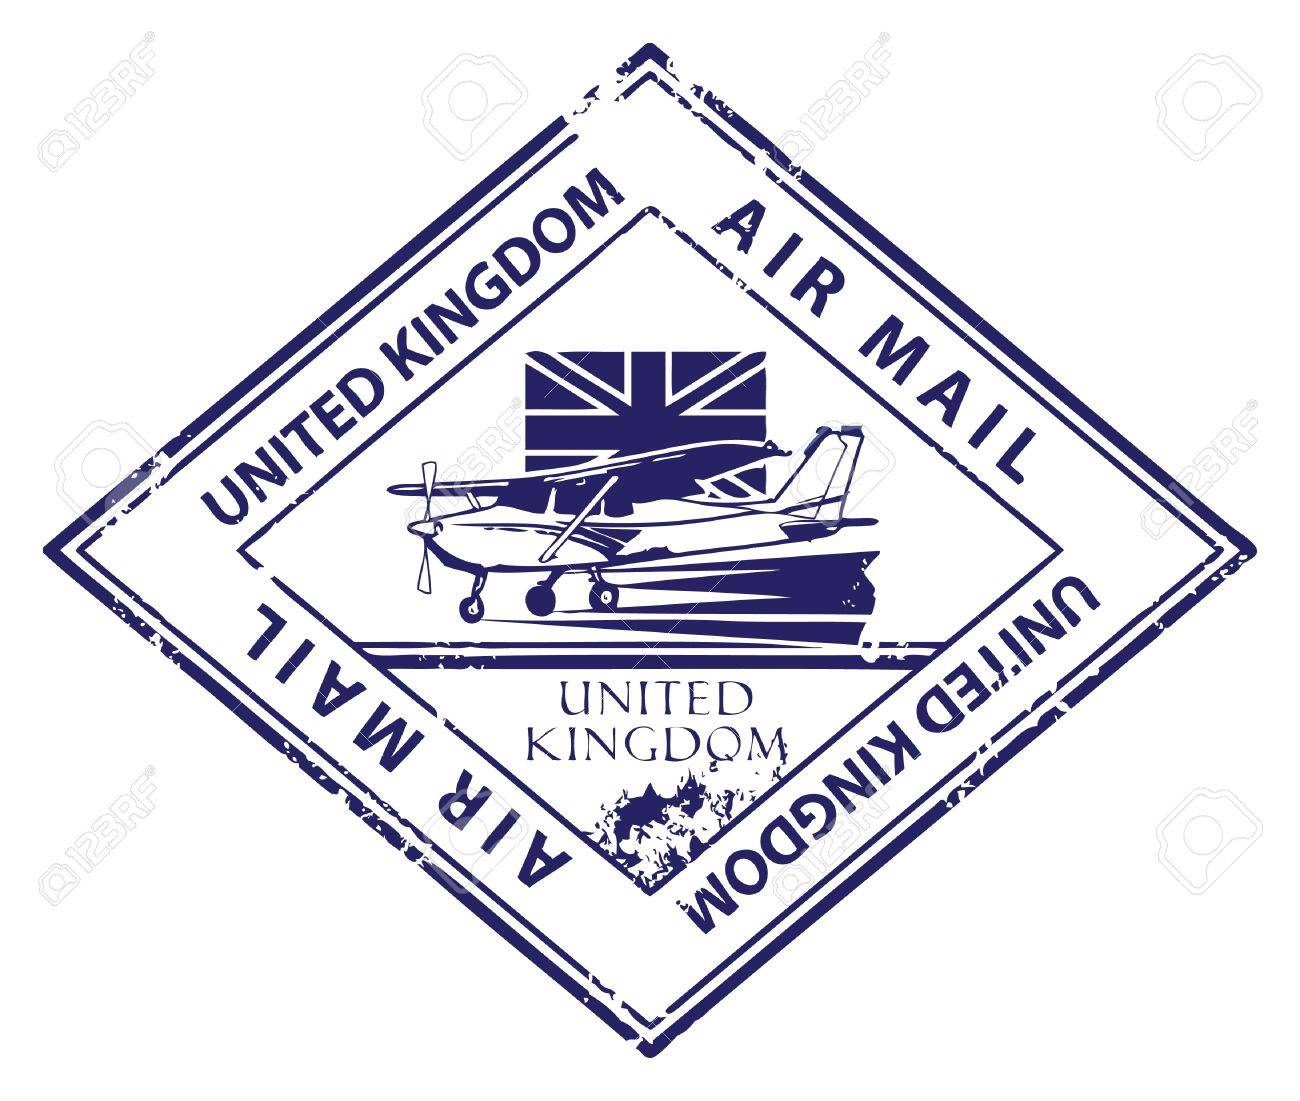 Grunge rubber stamp with airplane and the word Air Mail, United Kingdom inside Stock Vector - 14311268